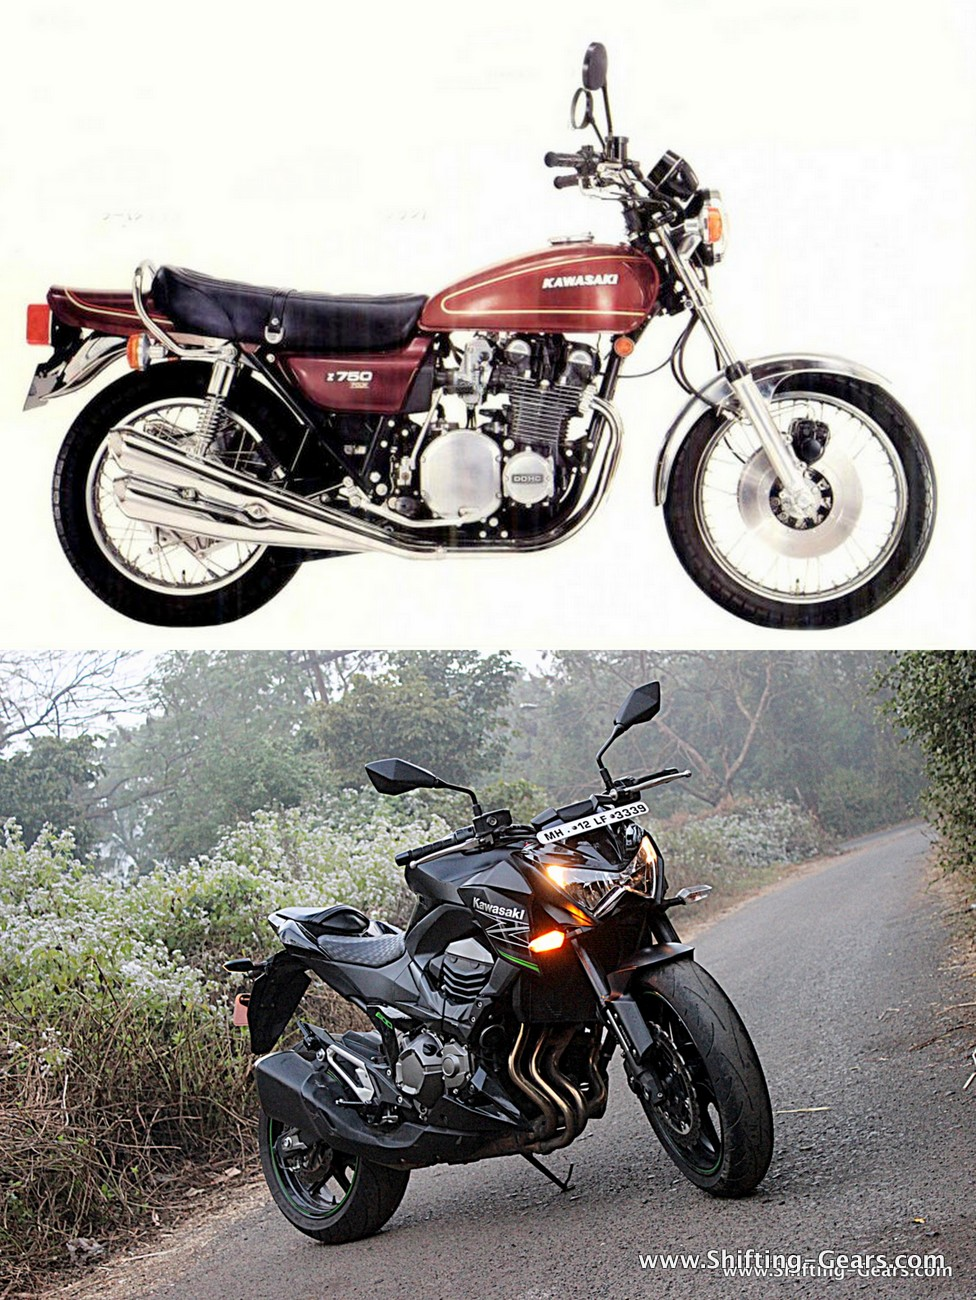 1976 Kawasaki Z750 on top and the latest Z800 below